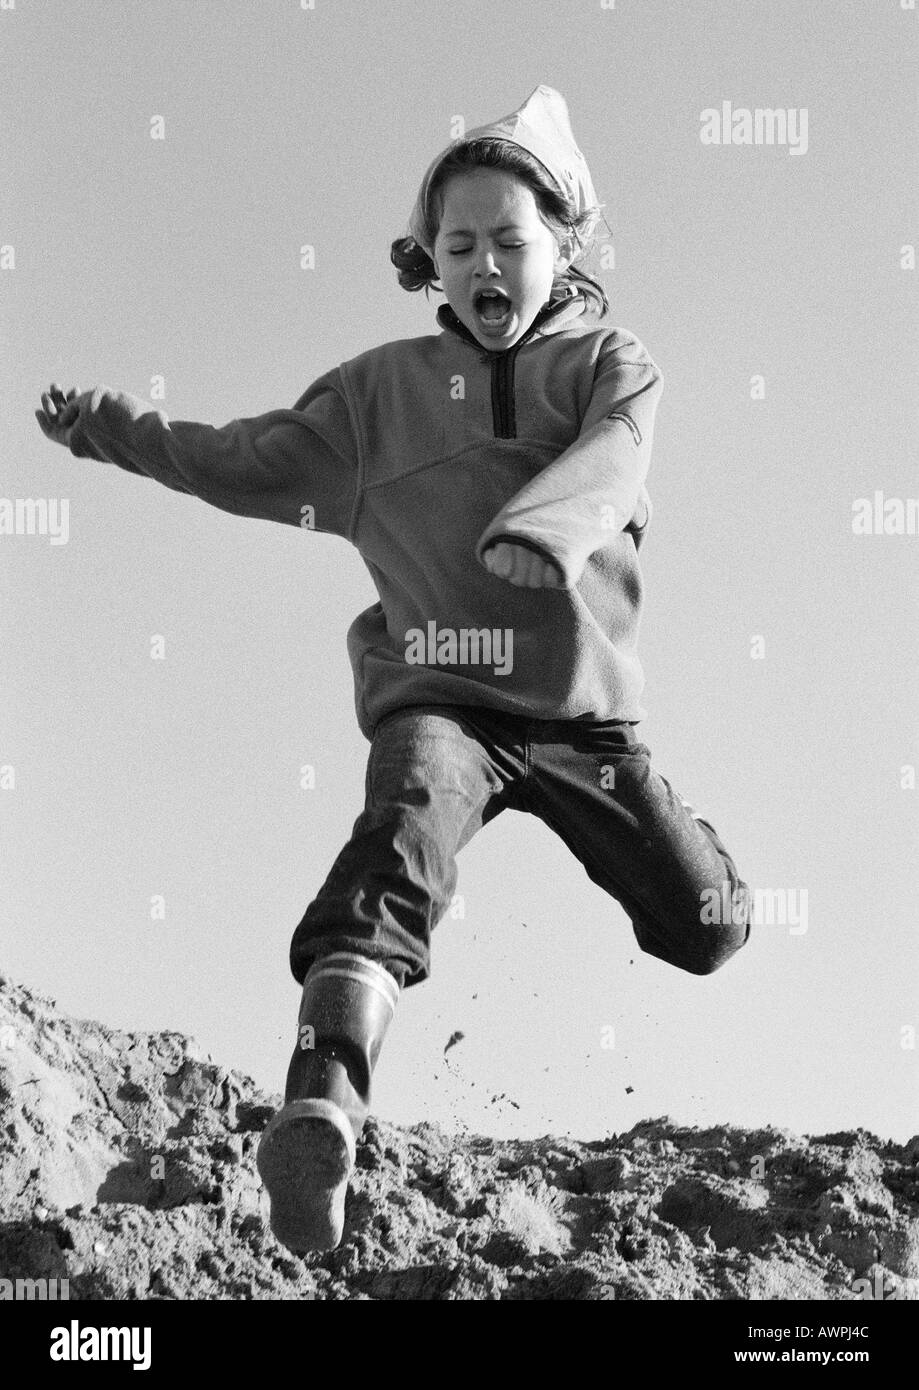 e35a0aa0 Little Girl Running Black and White Stock Photos & Images - Alamy